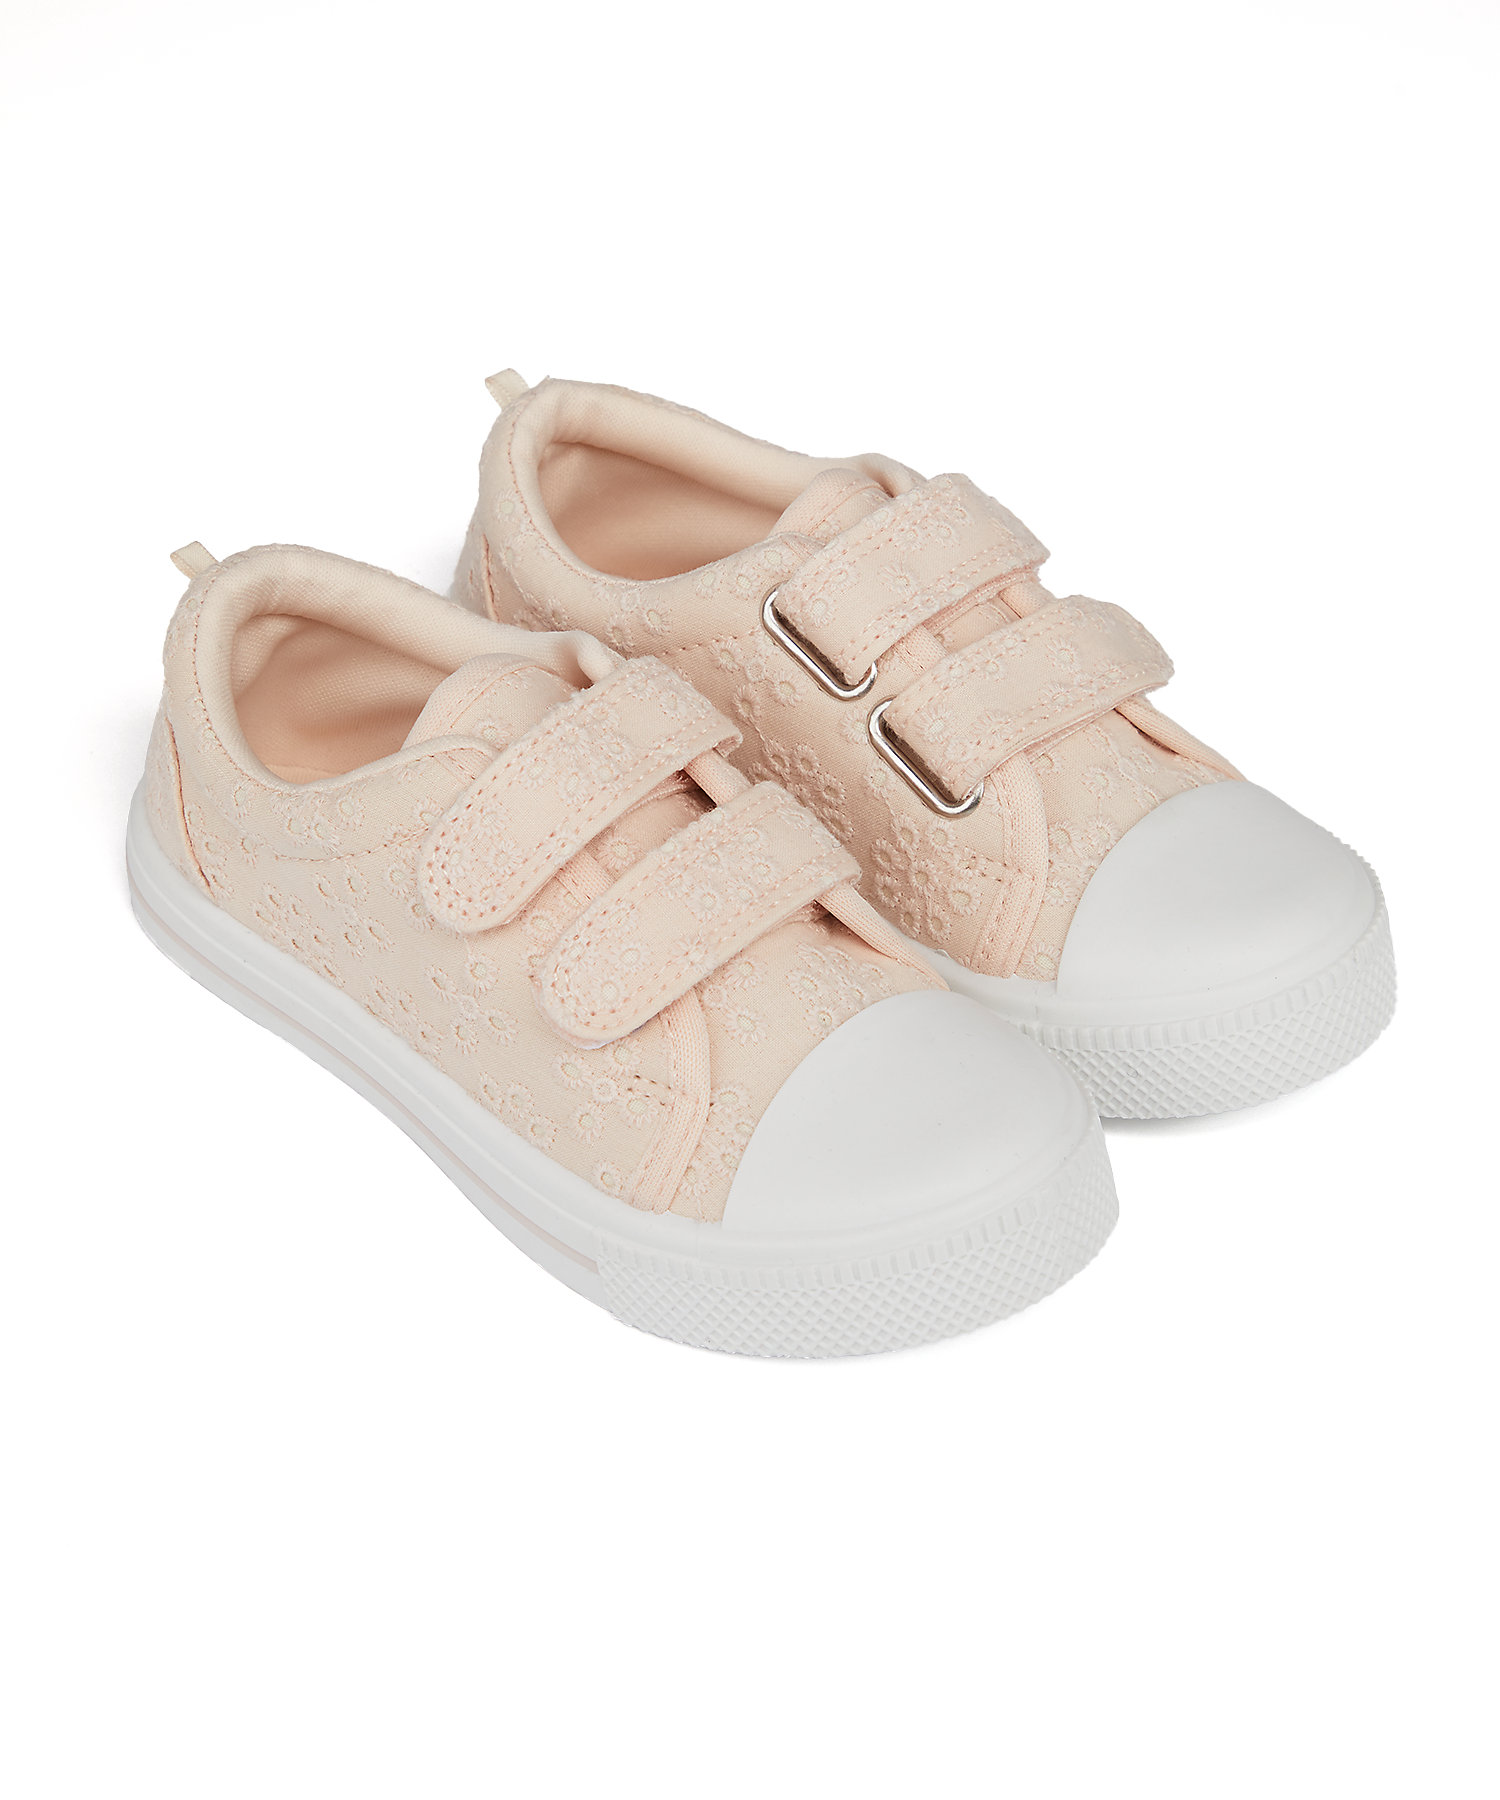 Mothercare | Girls Canvas Shoes Embroidered - Pink